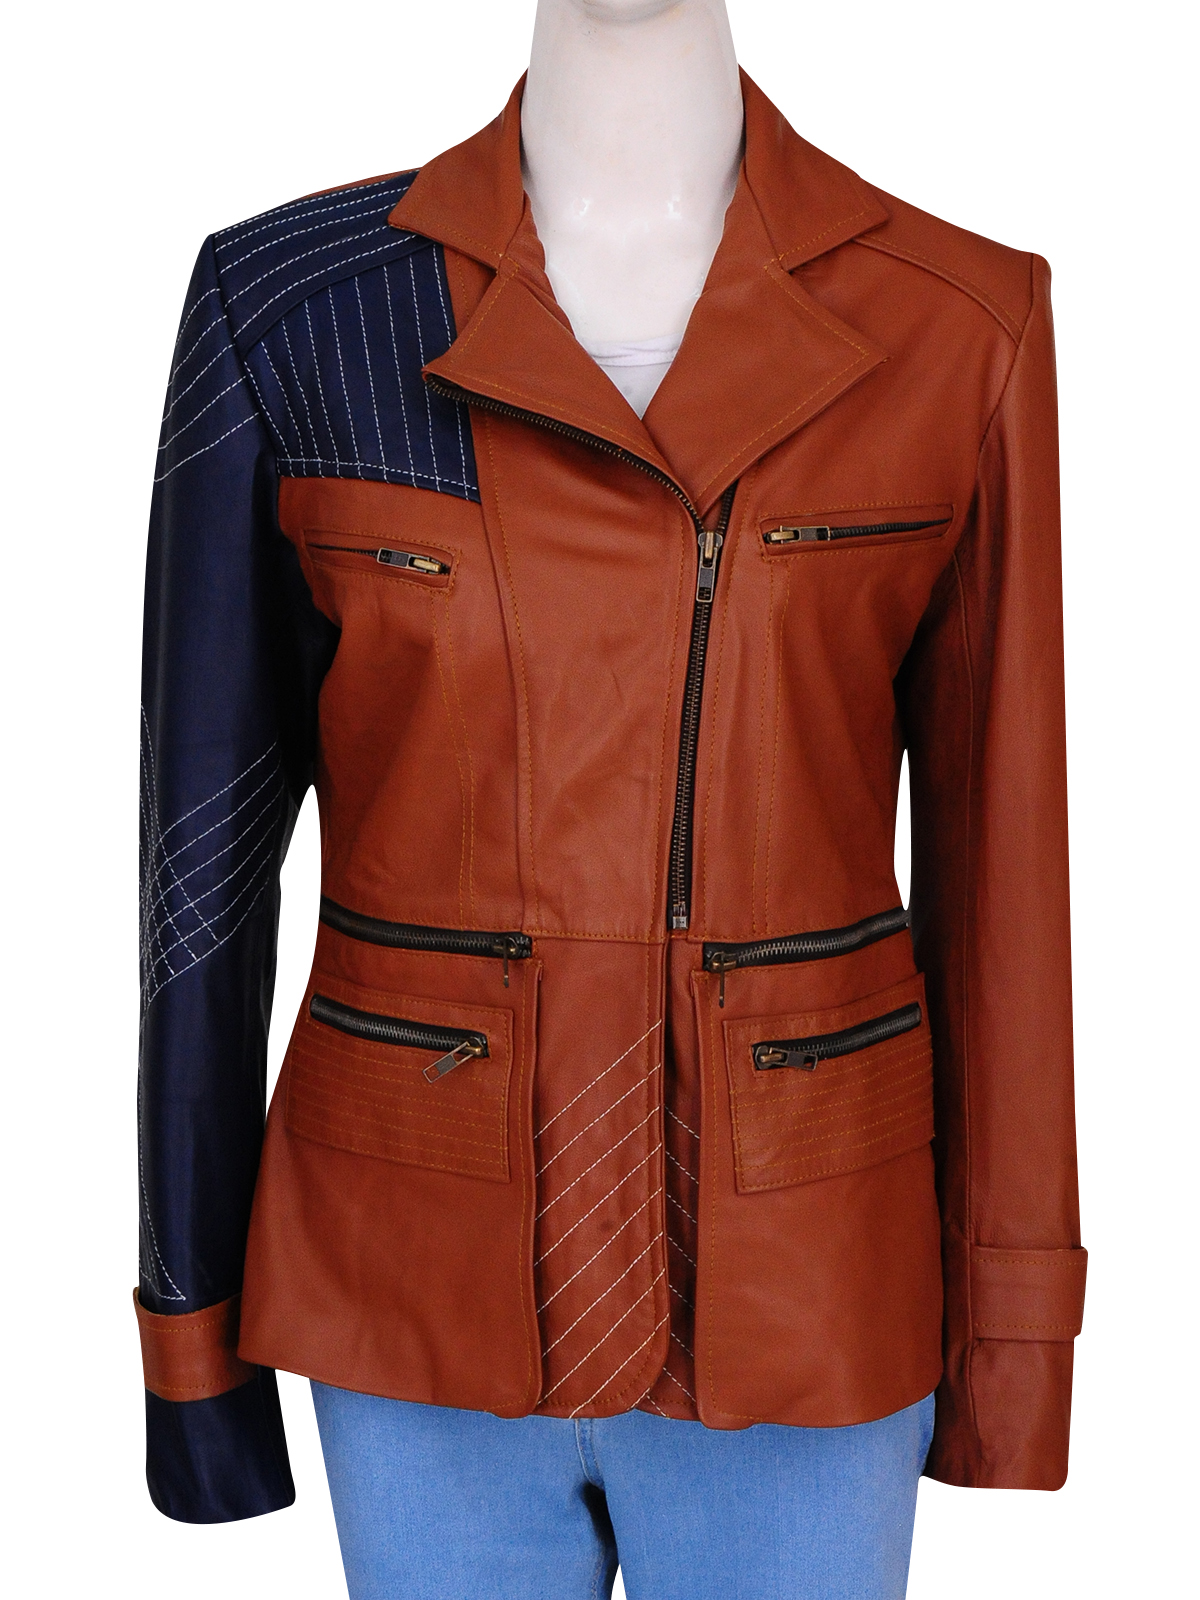 Julie Benz Defiance Amanda Rosewater Womens Leather Jacket Best For Halloween